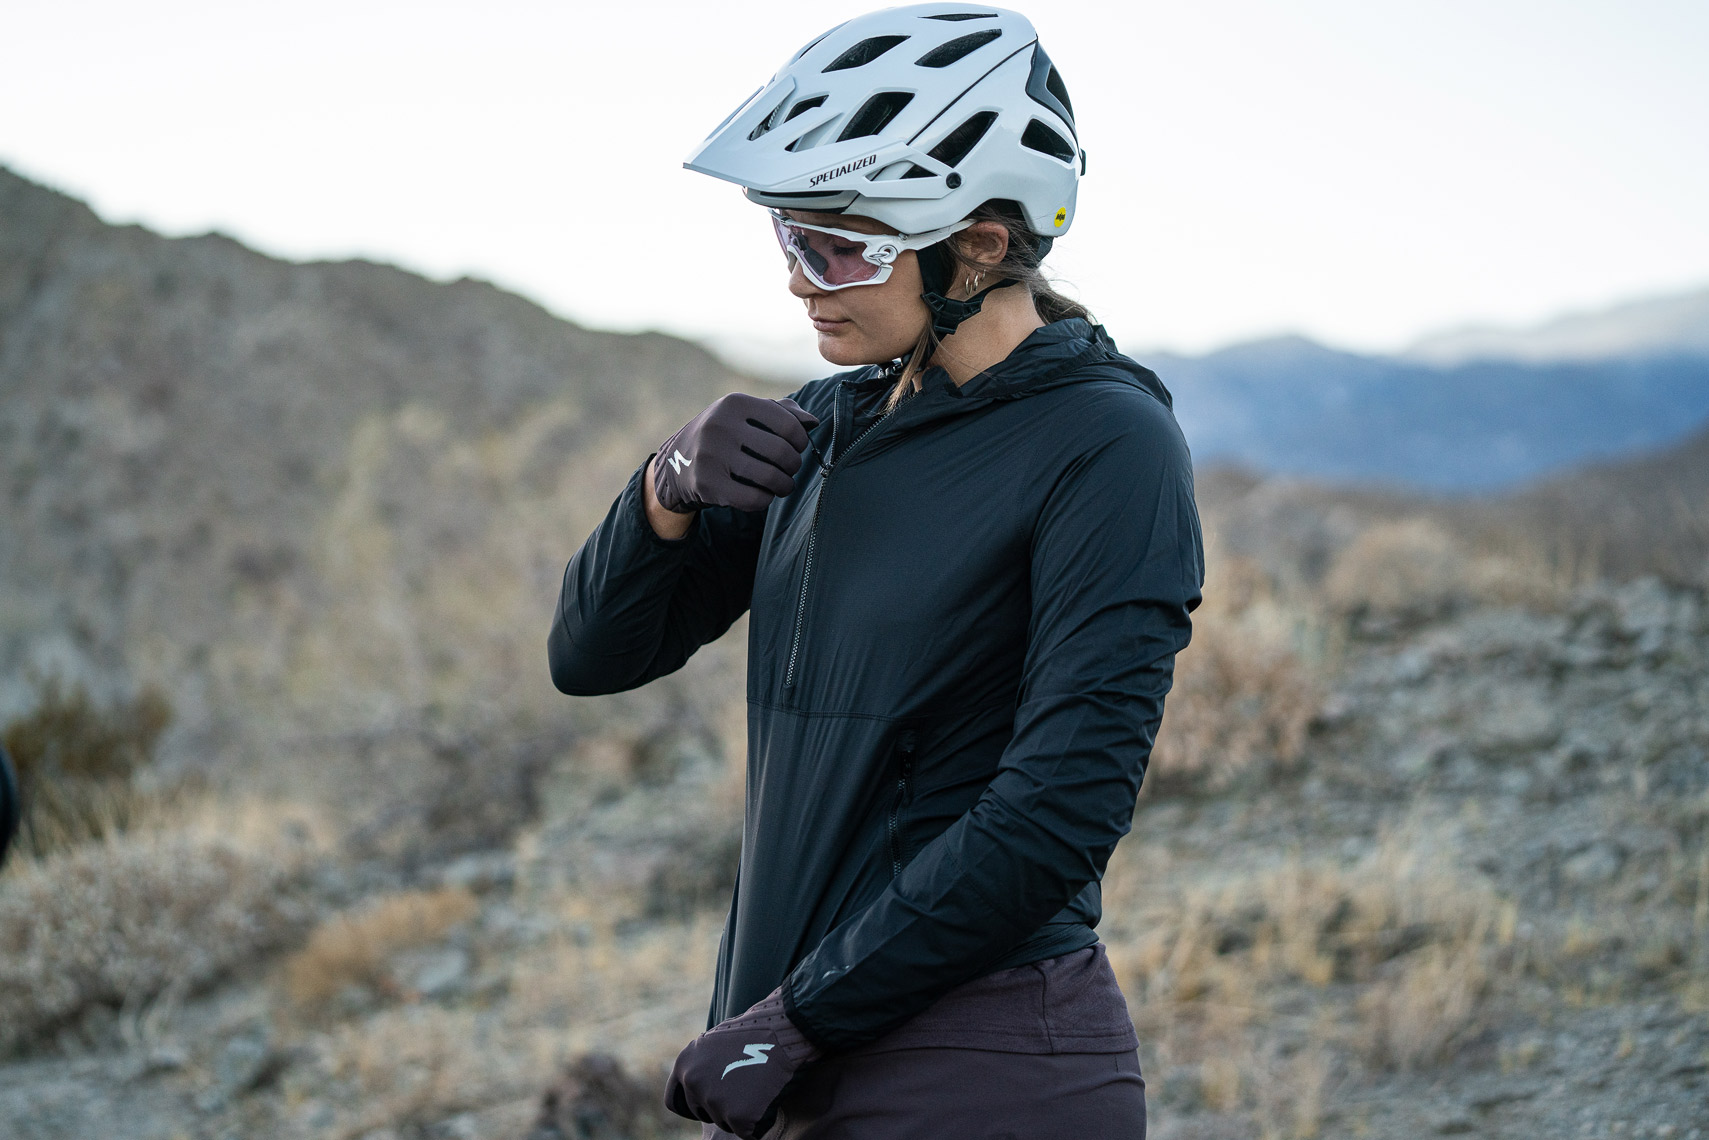 Specialized_S21_MTB_Clothing_Palm_Springs_VanWeelden-348